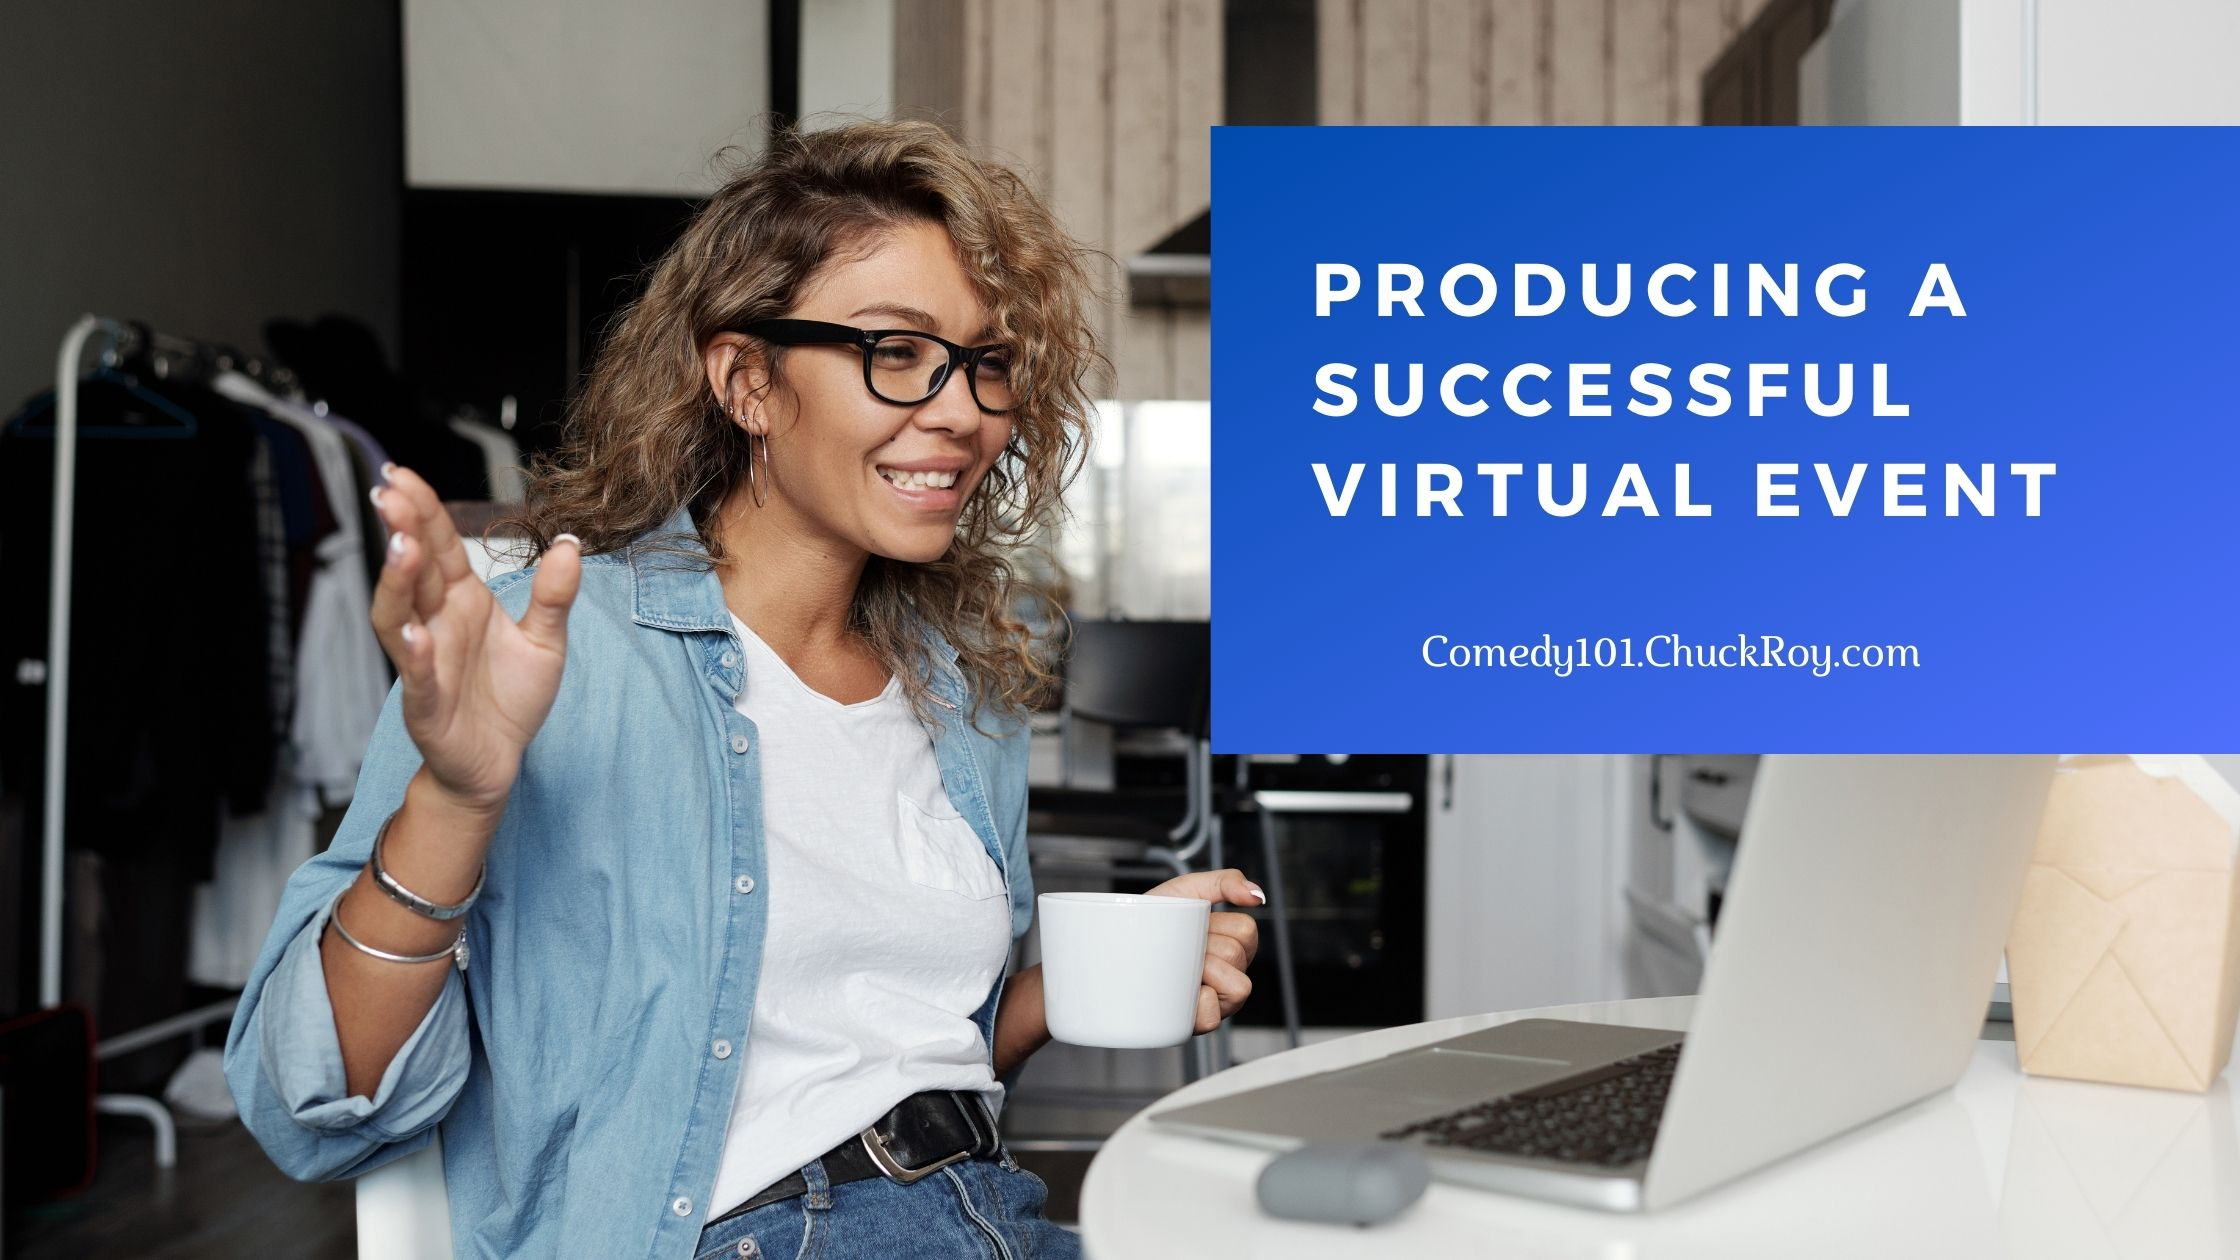 Producing A Successful Virtual Event